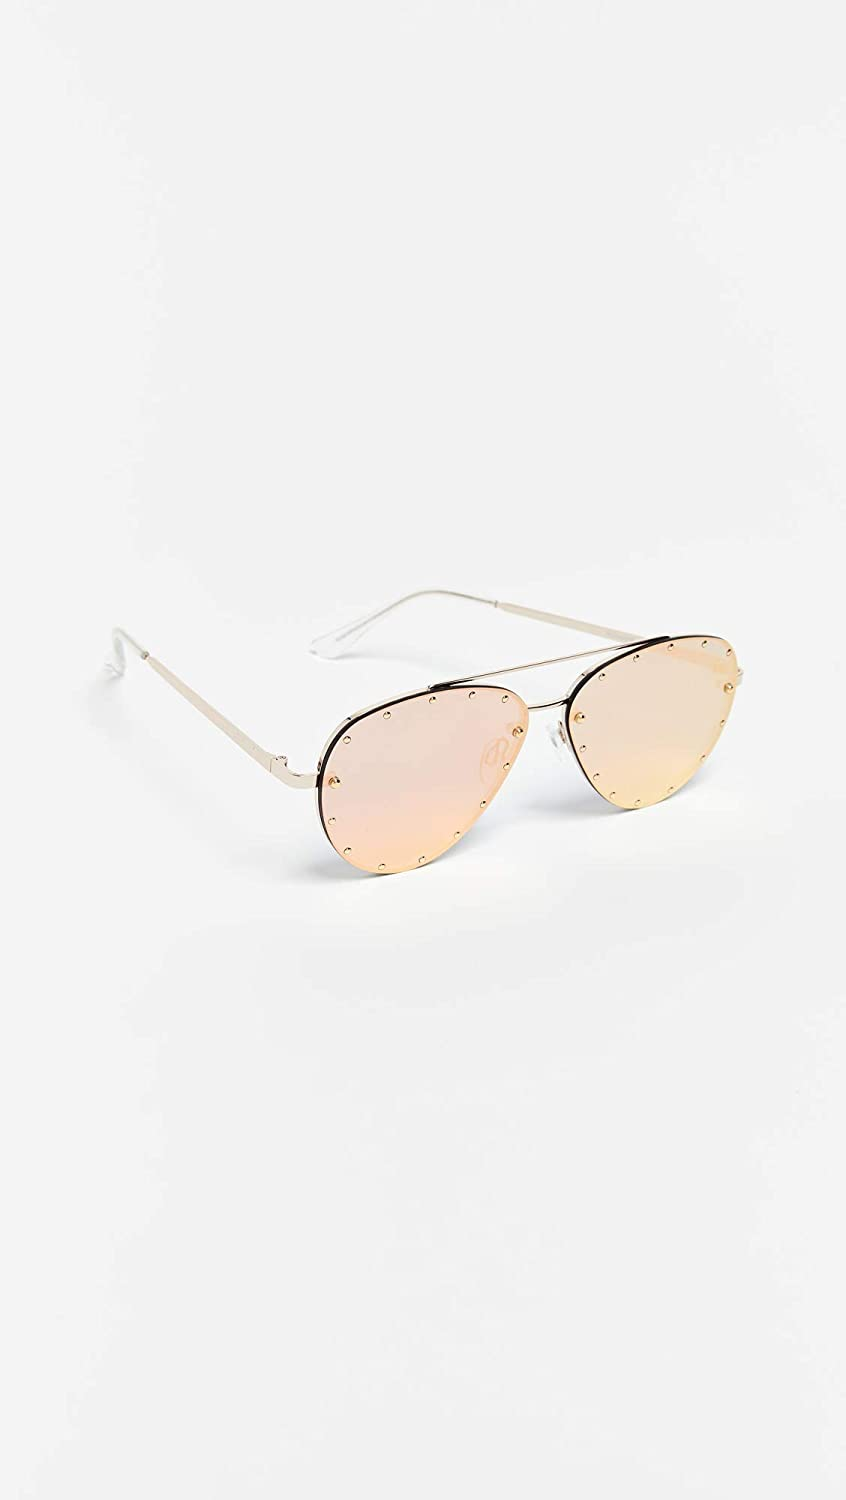 b8b723bc12f Quay womens roxanne sunglasses gold rose one size clothing jpg 846x1500 Quay  philippines elle shades